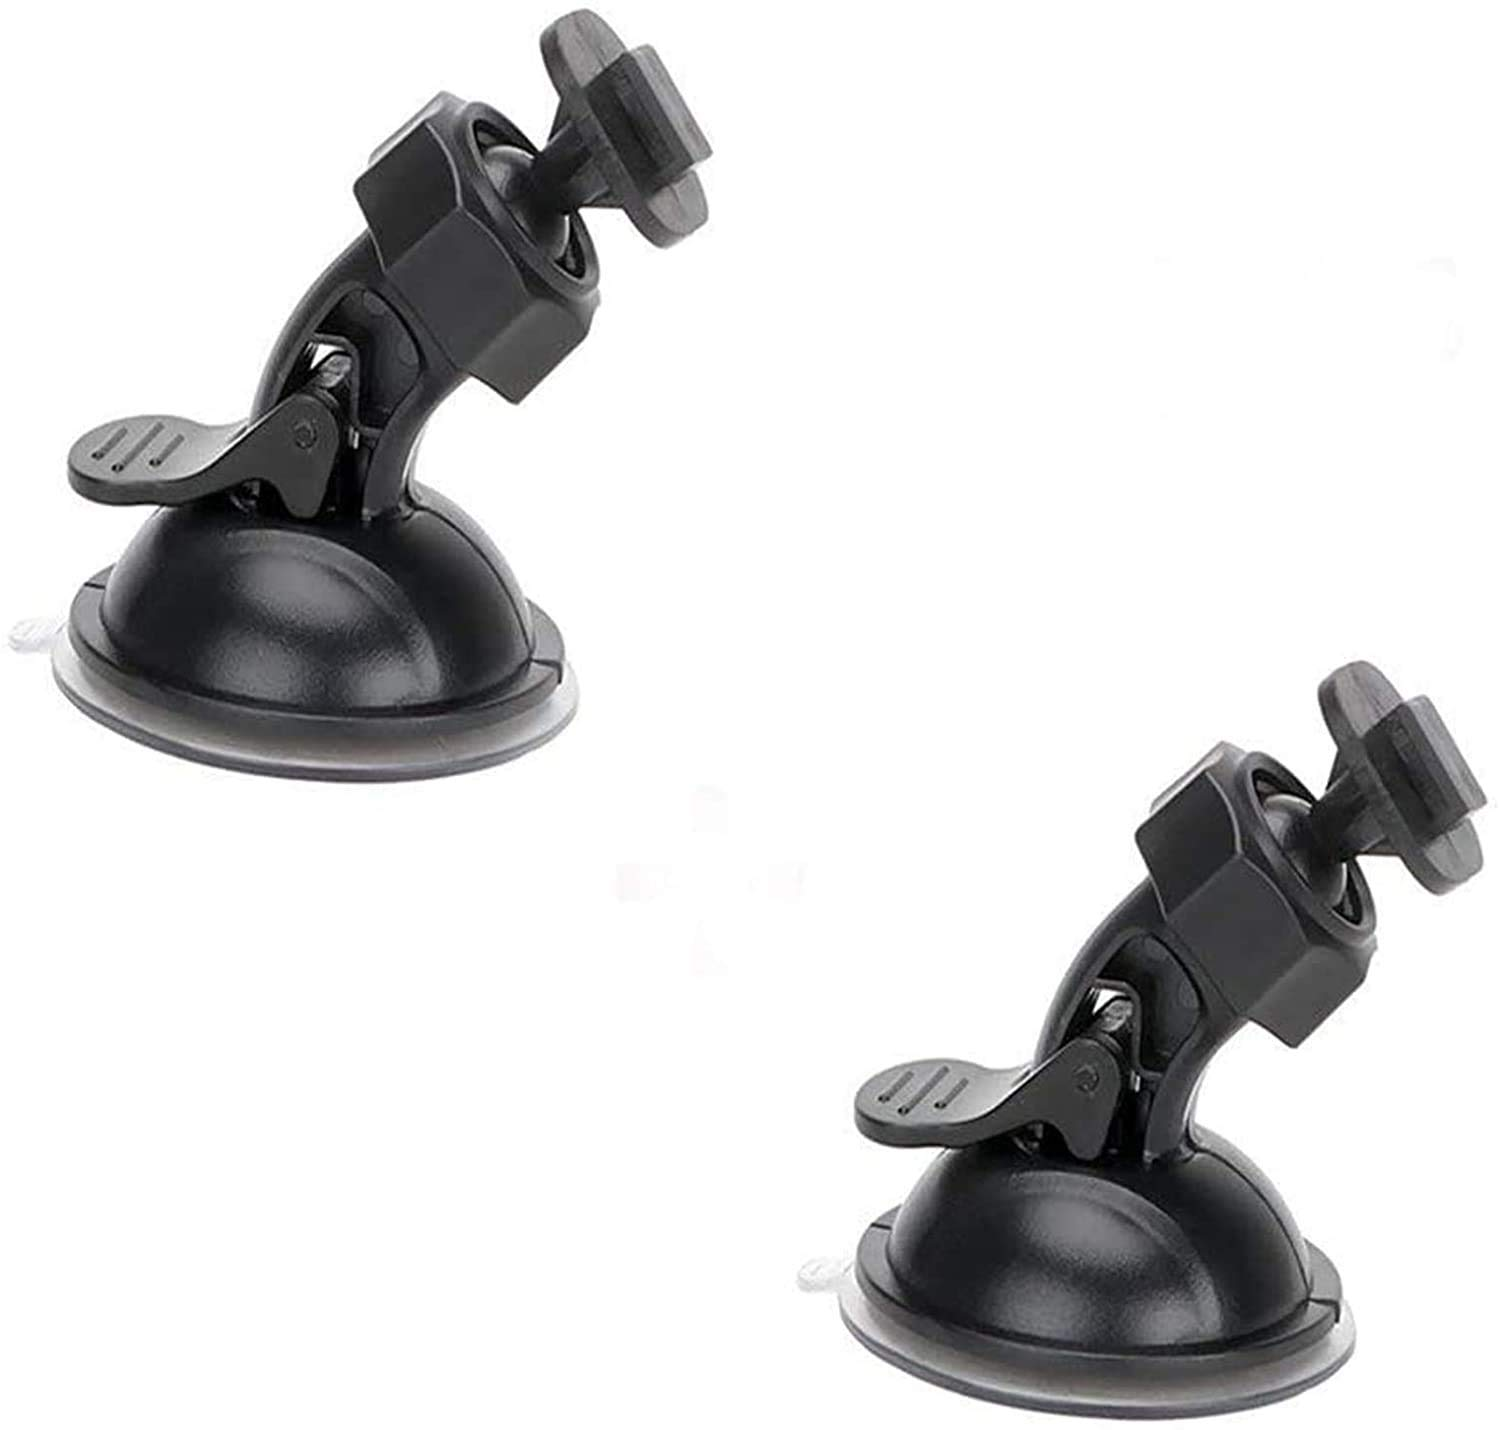 YI TiToeKi Dash Cam Suction Mount with 15+ Swivel Ball Adapters Compatible with Rexing V1 Byakov Old Shark UGSHD and Most Dash Cameras Roav UGSHD APEMAN Z-Edge